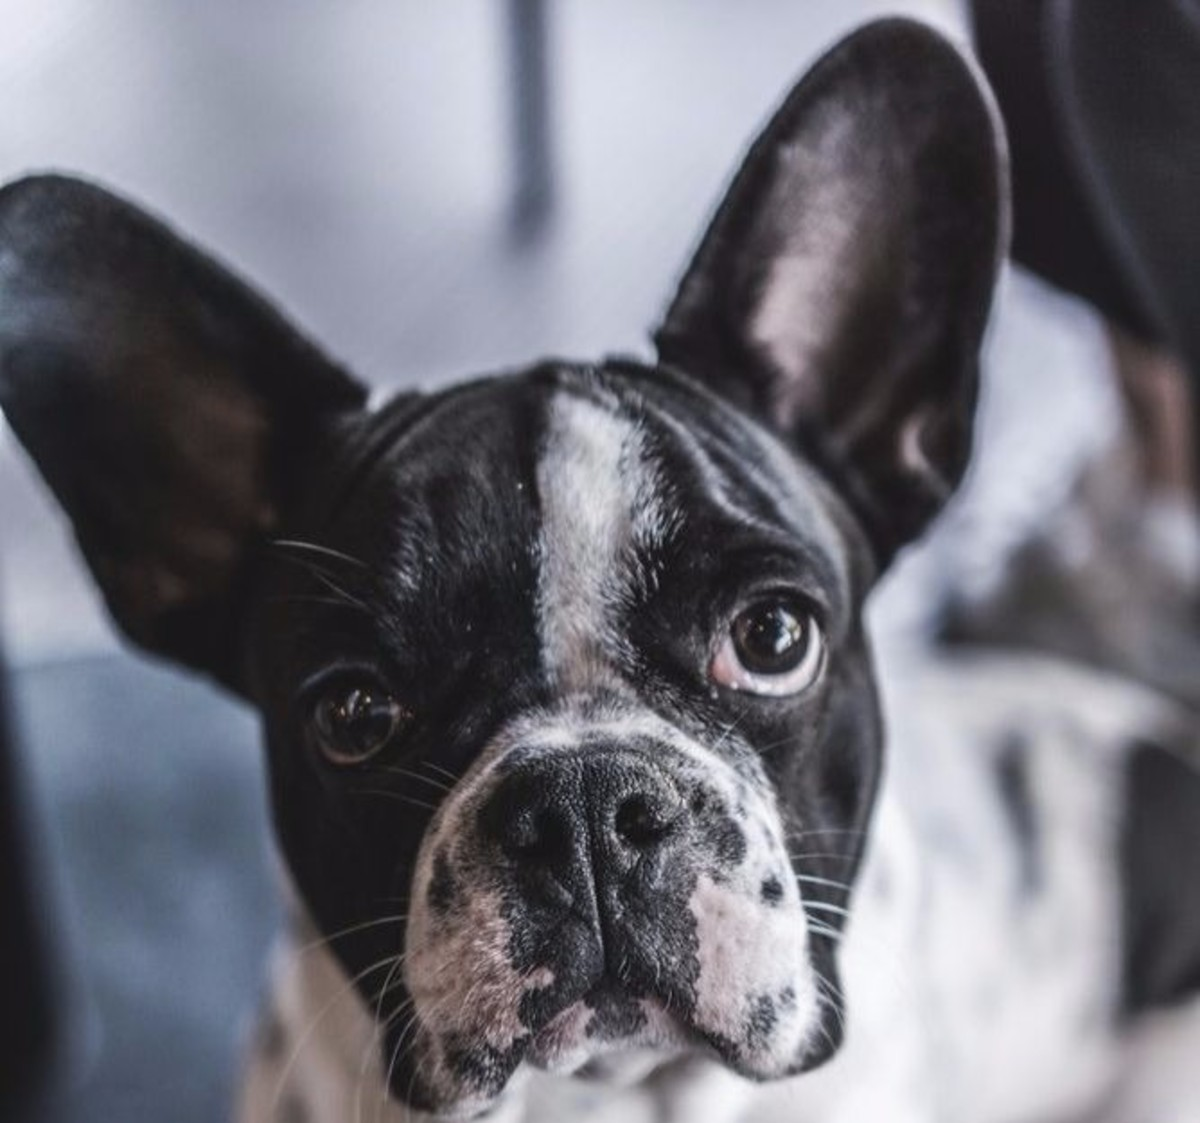 Dogs with erect ears are less likely to get infections because their ears receive more sunlight and airflow.